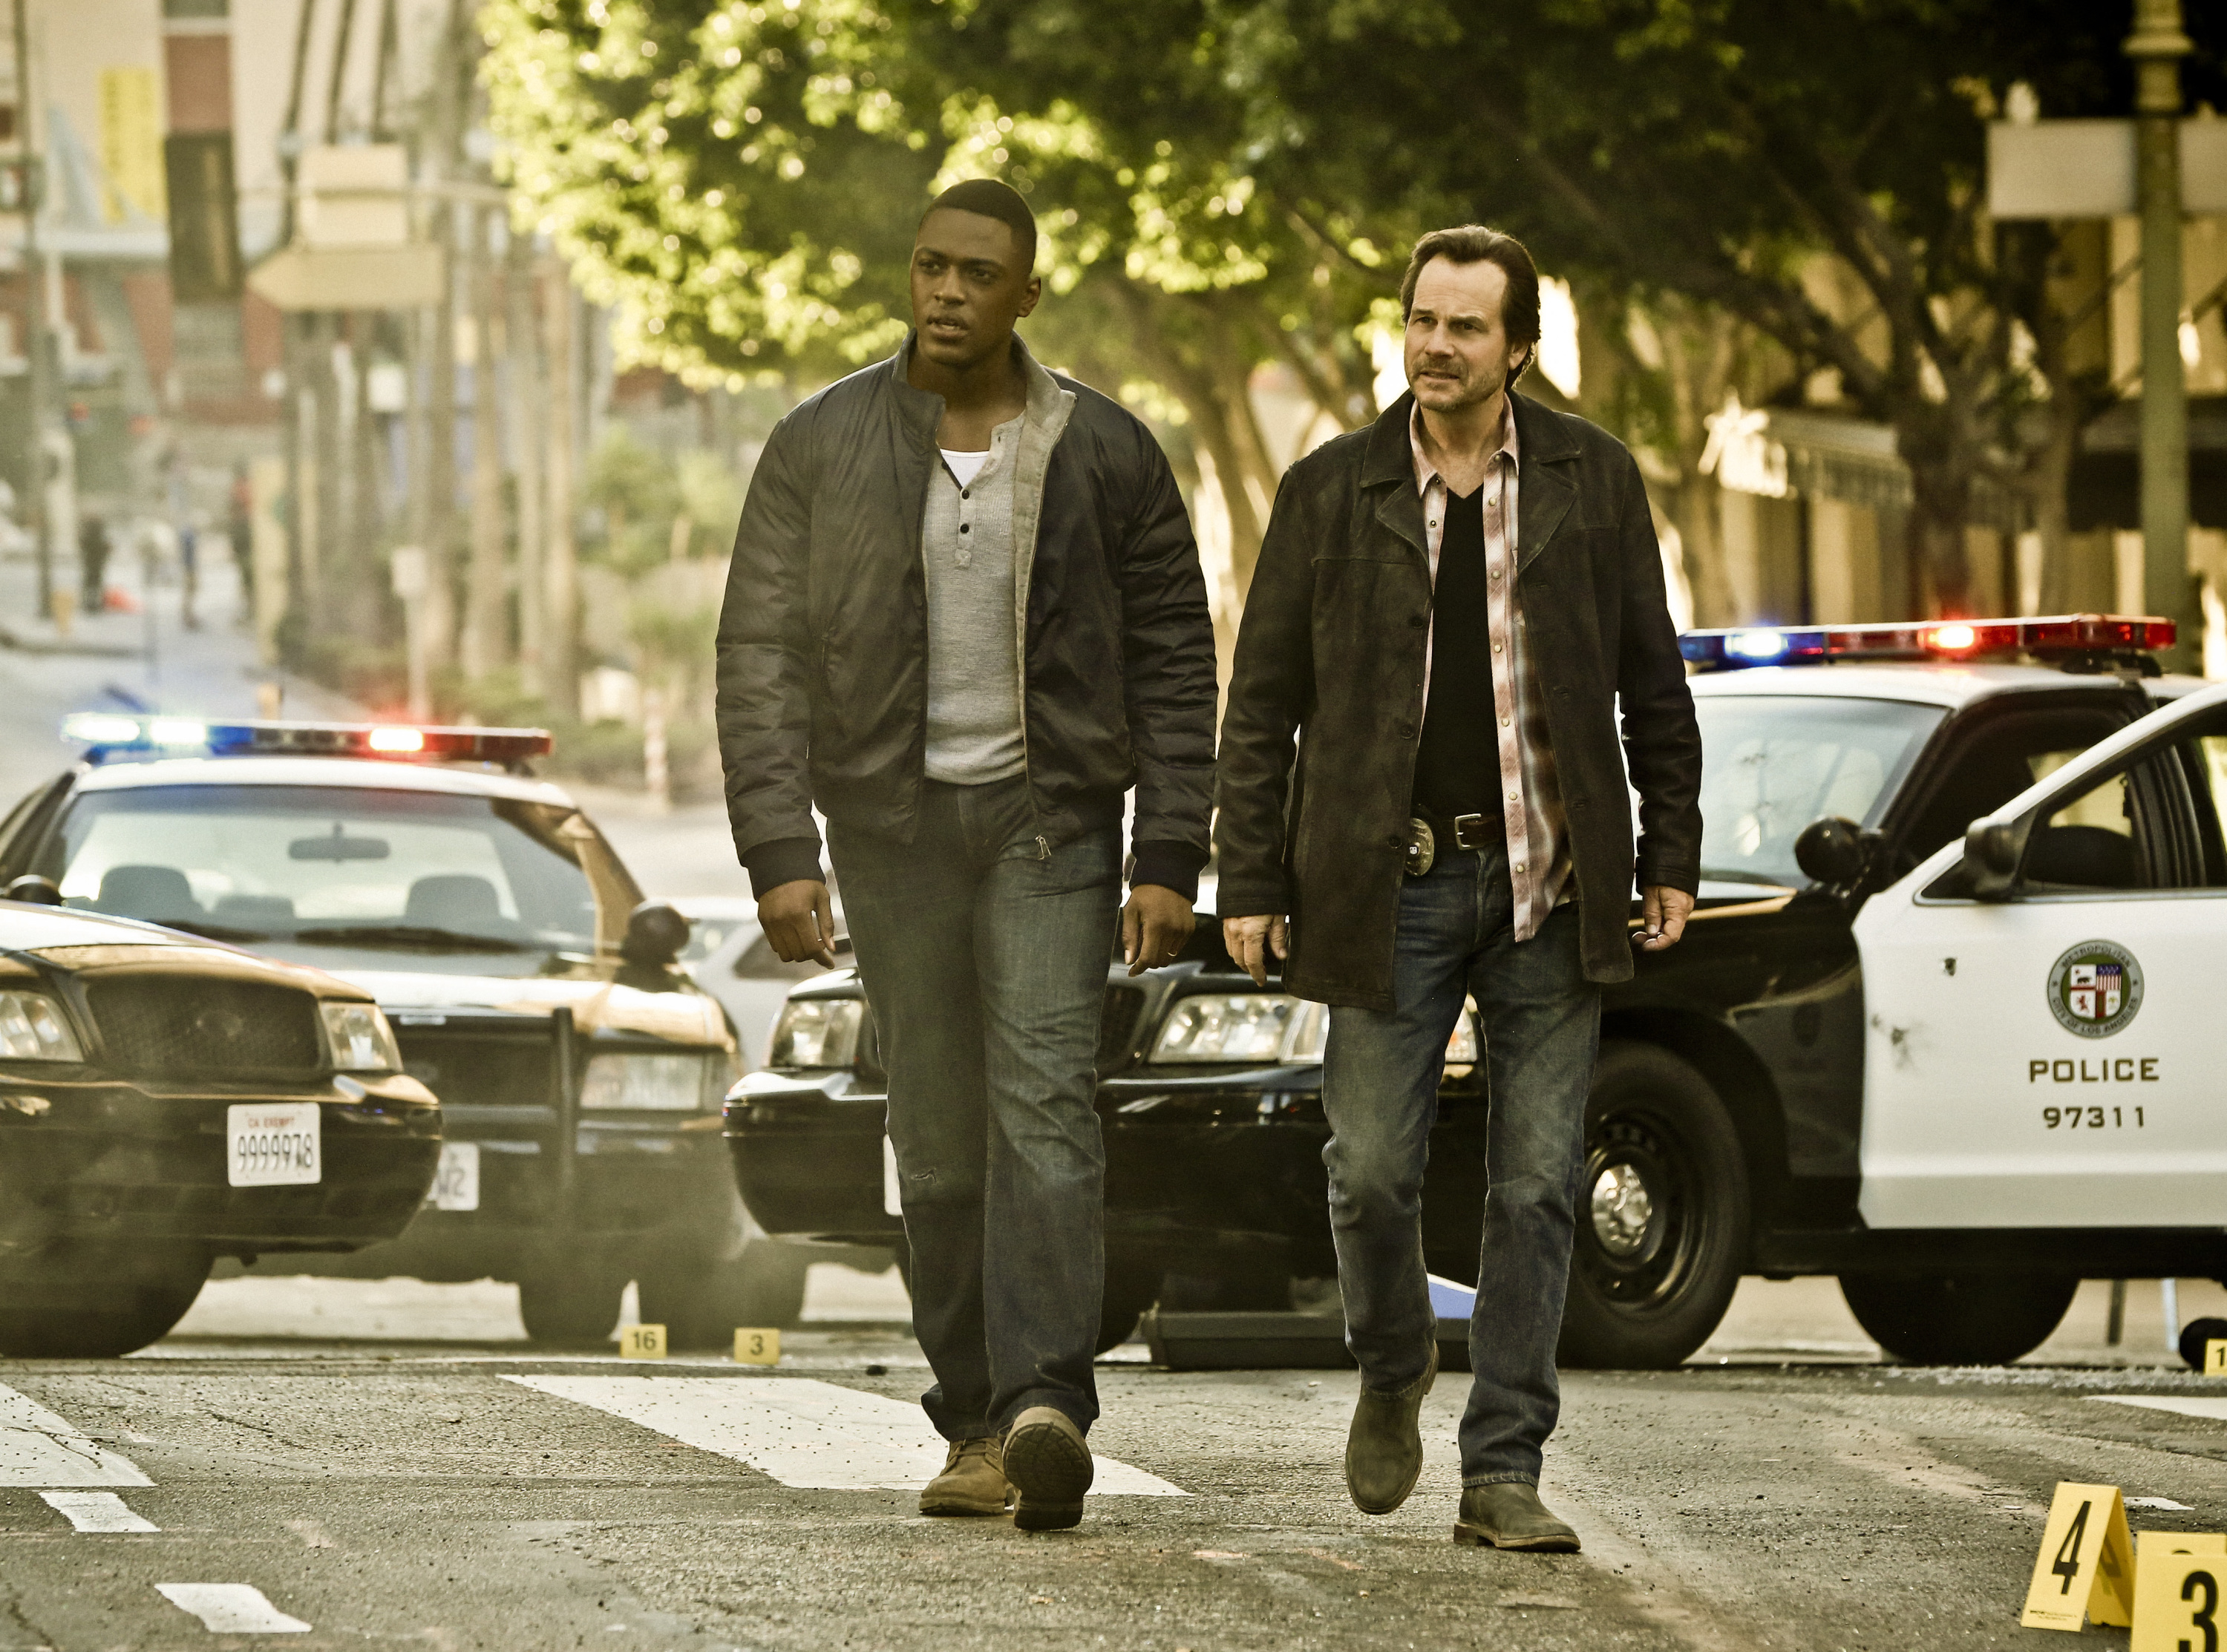 Training Day is a crime drama that begins 15 years after the events of the feature film, starring Bill Paxton as Frank Rourke (right), a hardened, morally ambiguous detective for the LAPD, and Justin Cornwell as Kyle Craig (left), a young, idealistic officer tapped to go undercover as his trainee and spy on him.